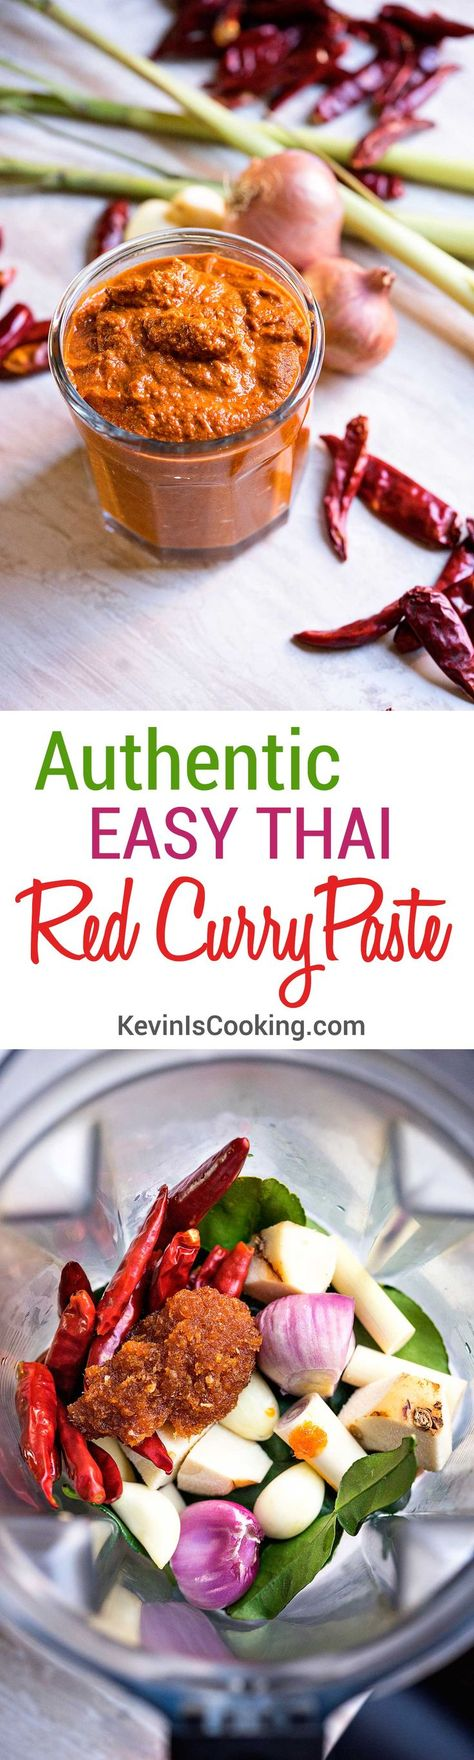 Looking for authentic Thai? ThisEasy Thai Red Curry Paste with only 7 ingredients delivers 1 massive amount of POW. www.keviniscooking.com